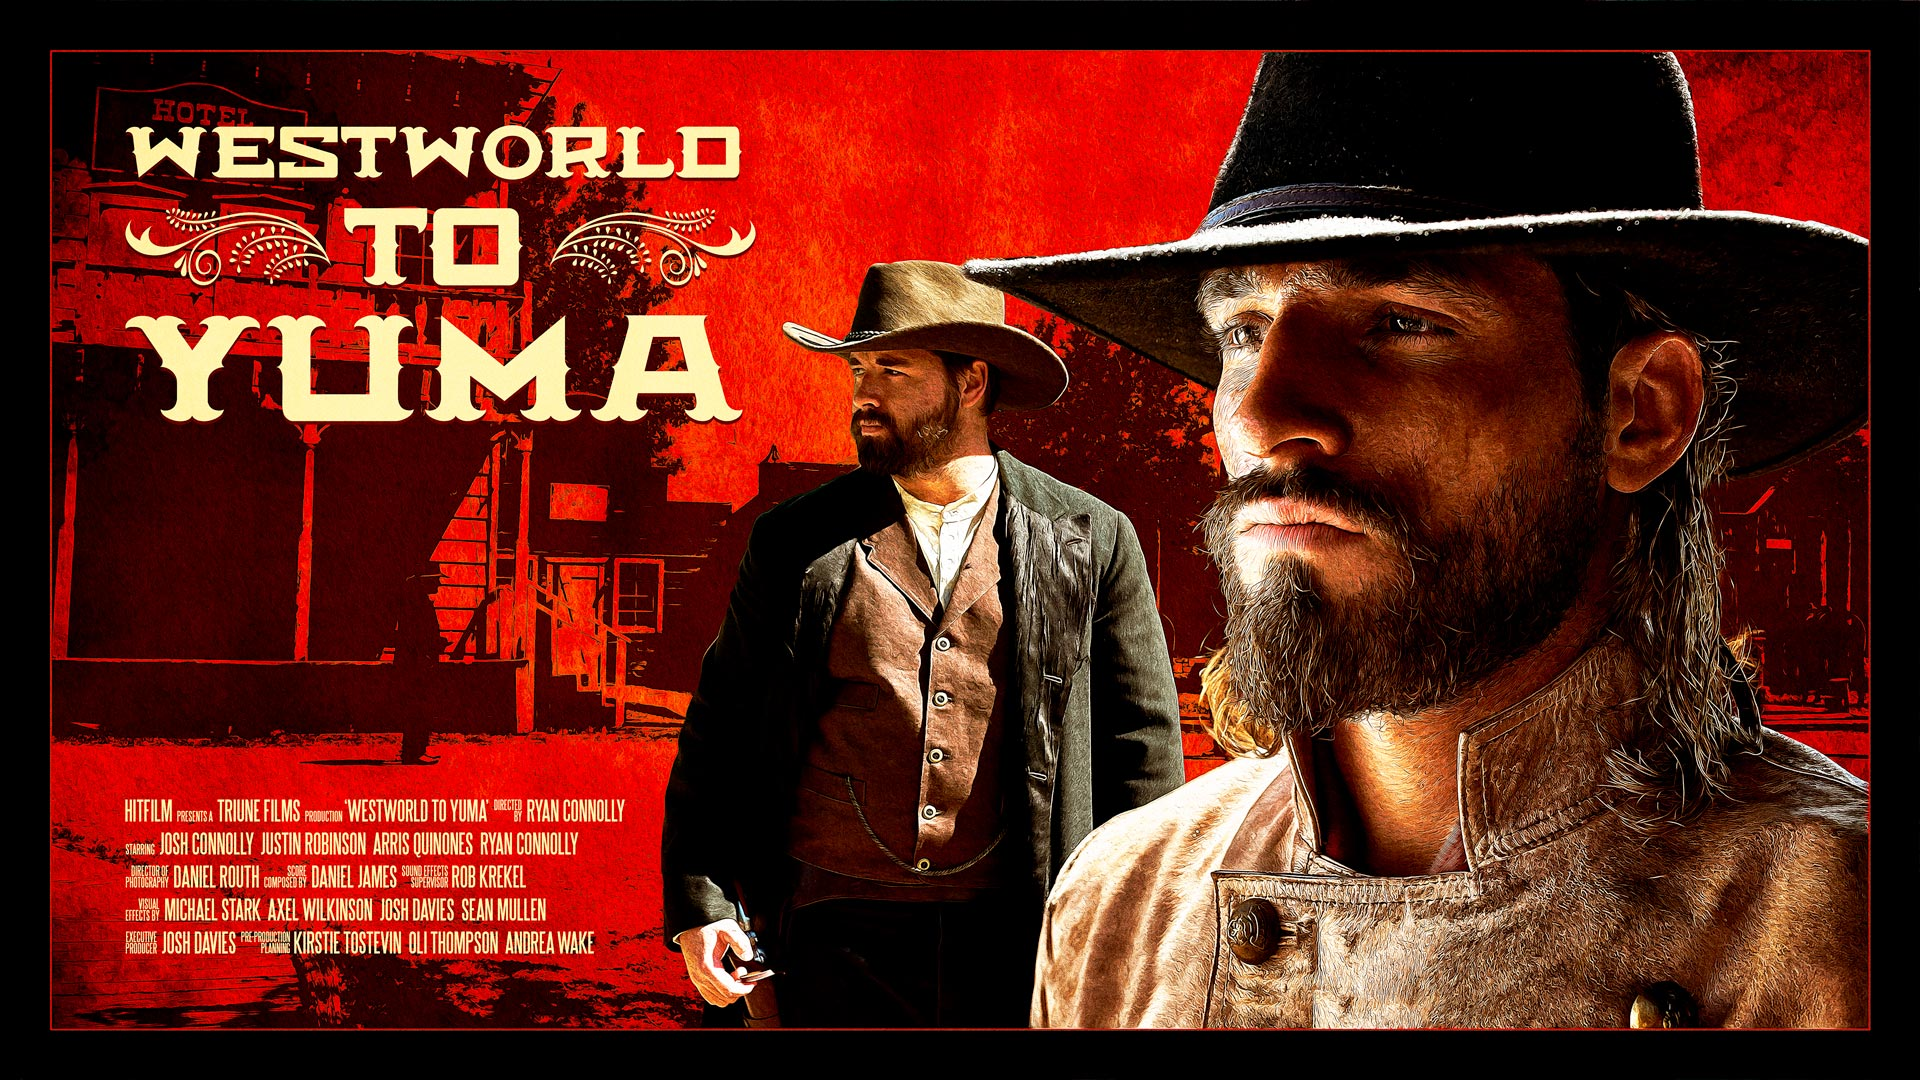 Westworld to Yuma poster image